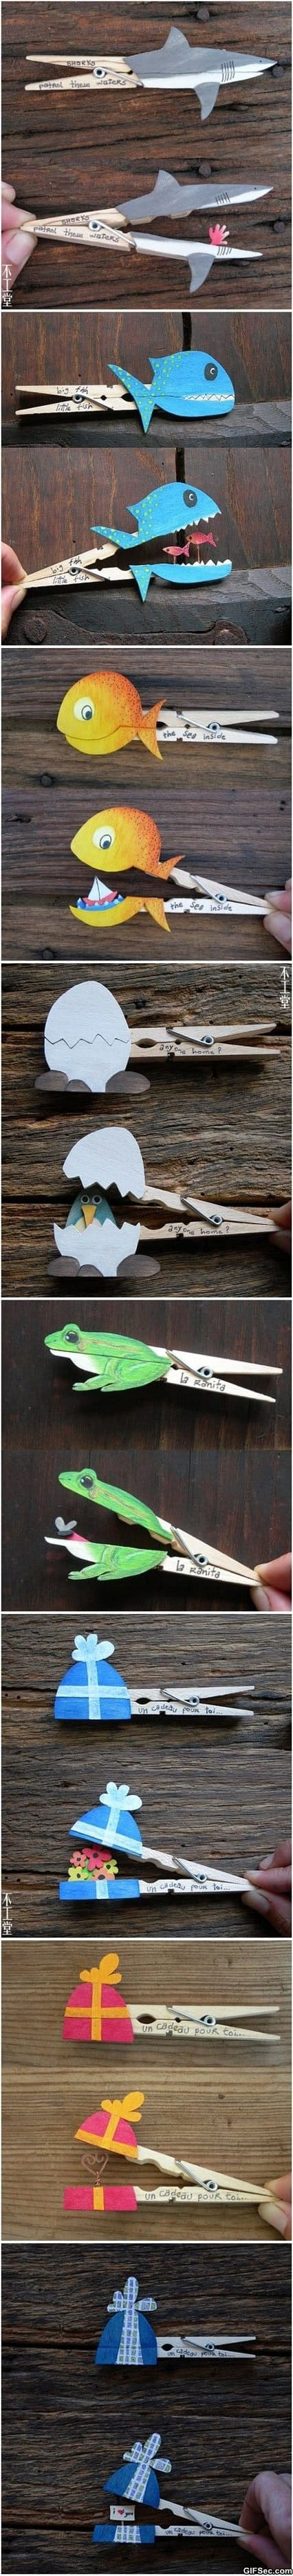 funny-fun-with-clothespins